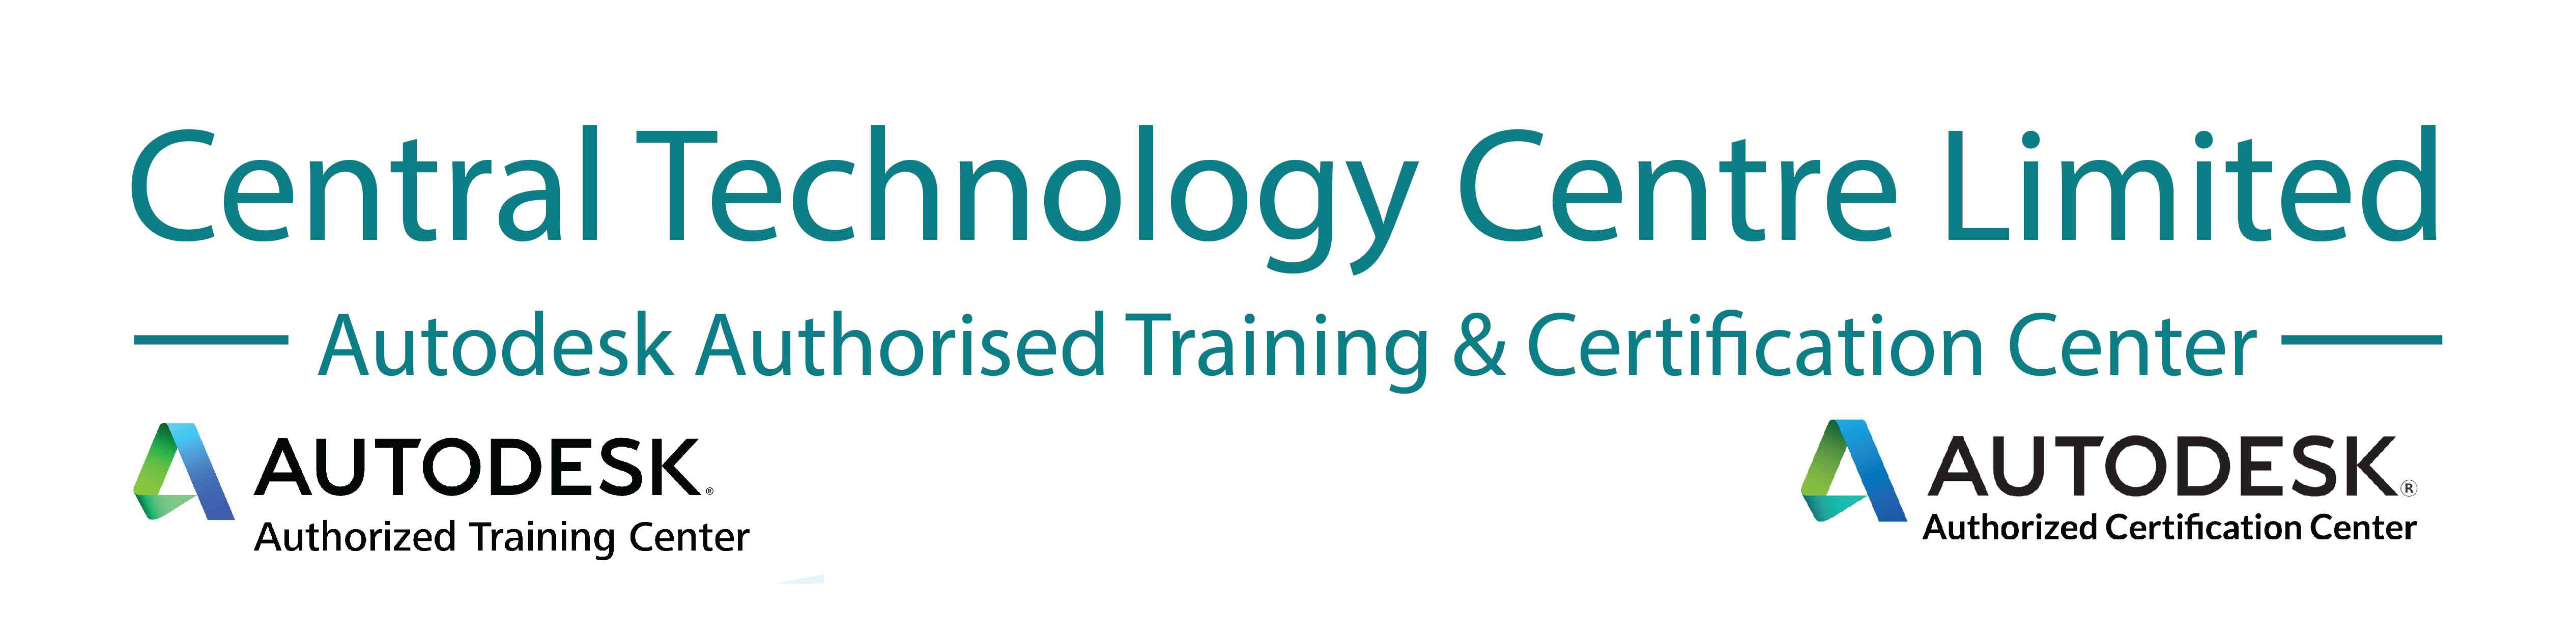 Central Technology Centre Limited Autodesk Training Centre Atc